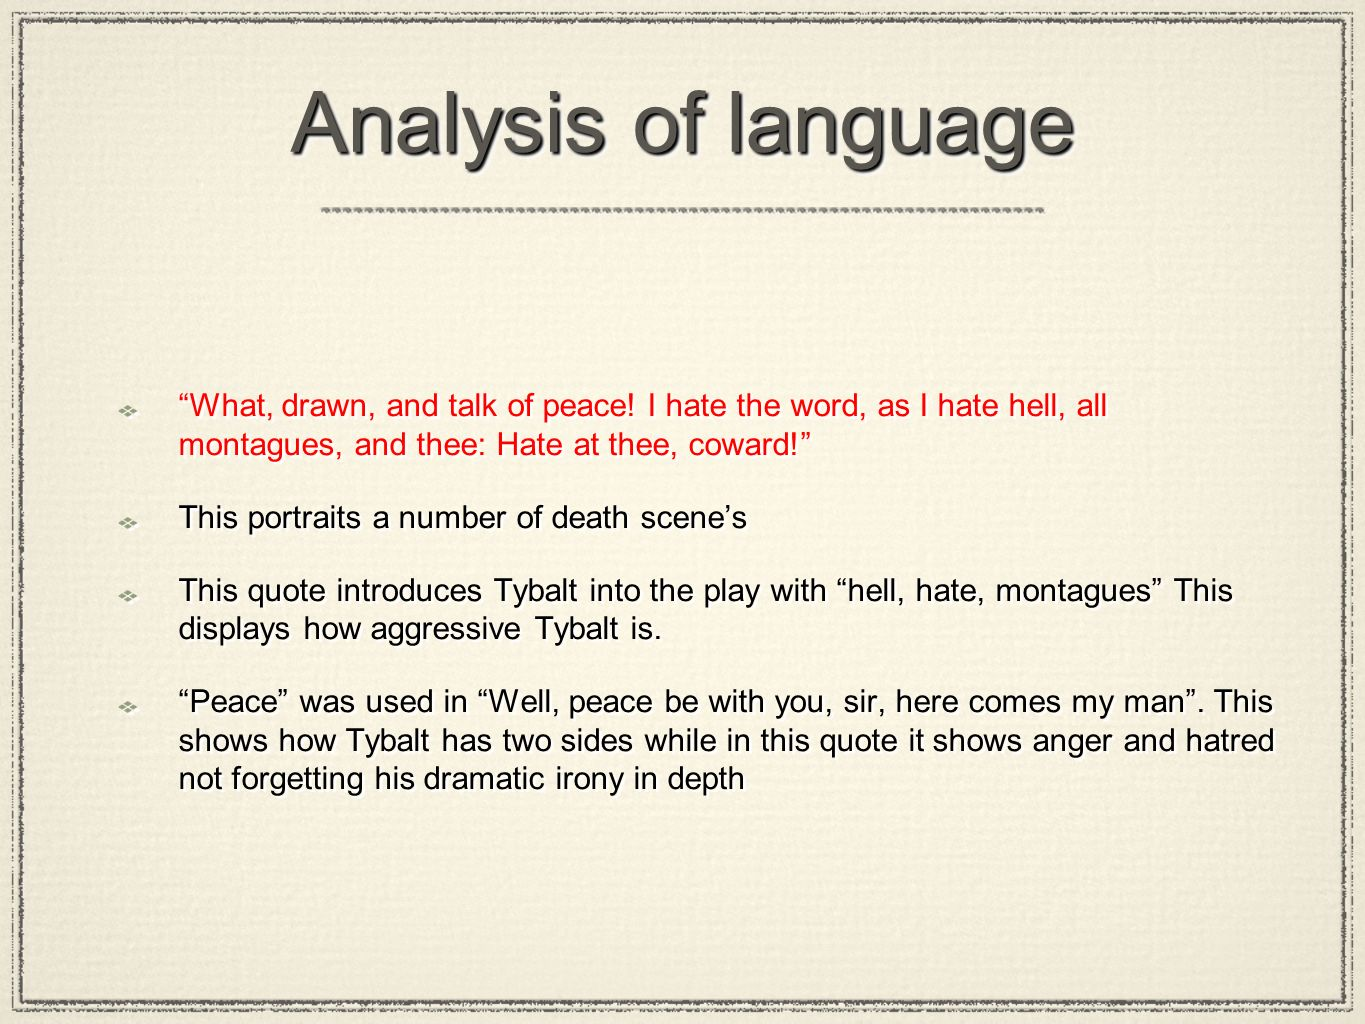 What Do You Think About The Way That Shakespeare Presents Tybalt